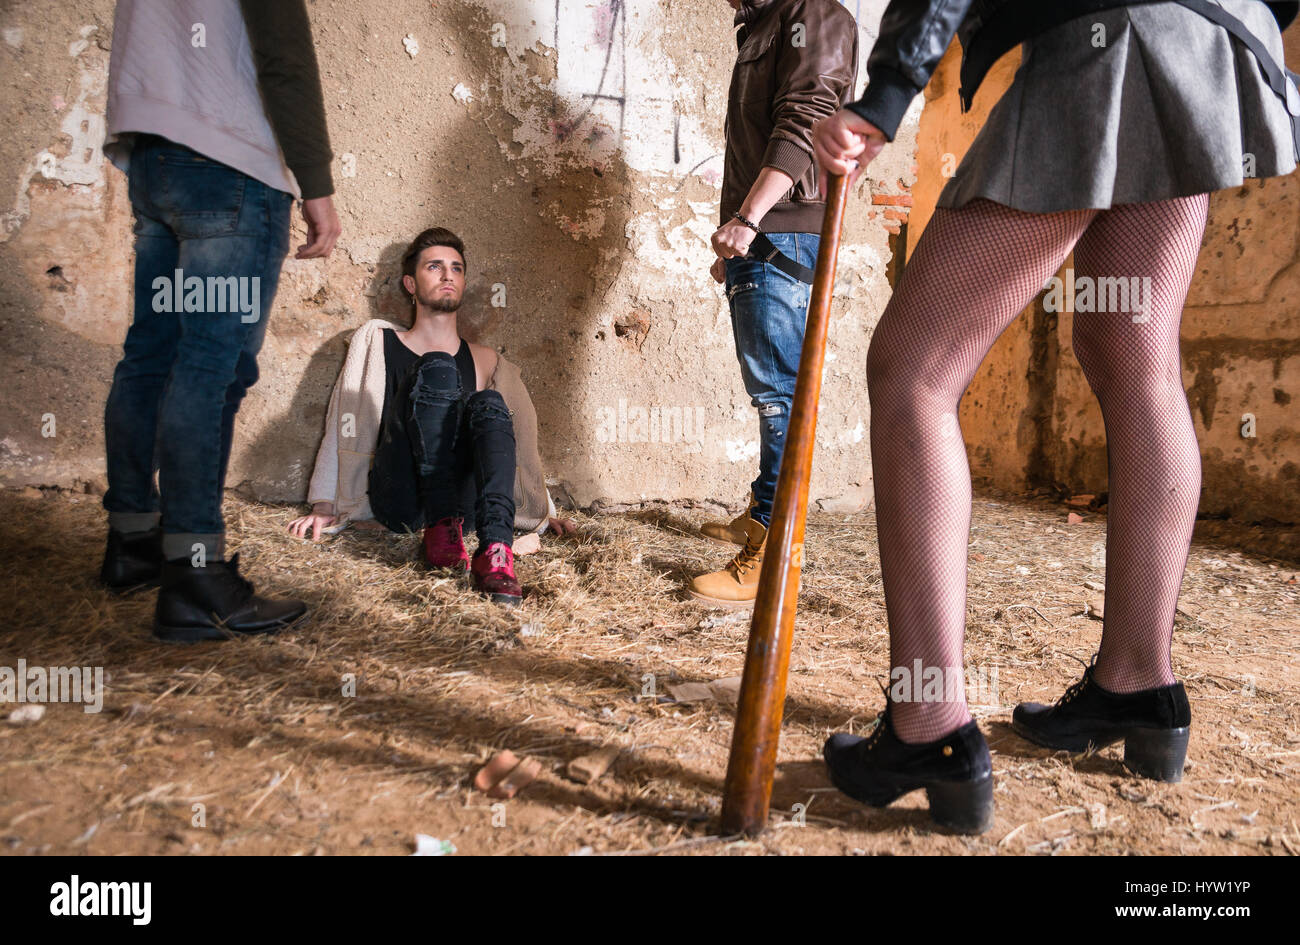 Gay boy surrounded by homophobic people - Stock Image